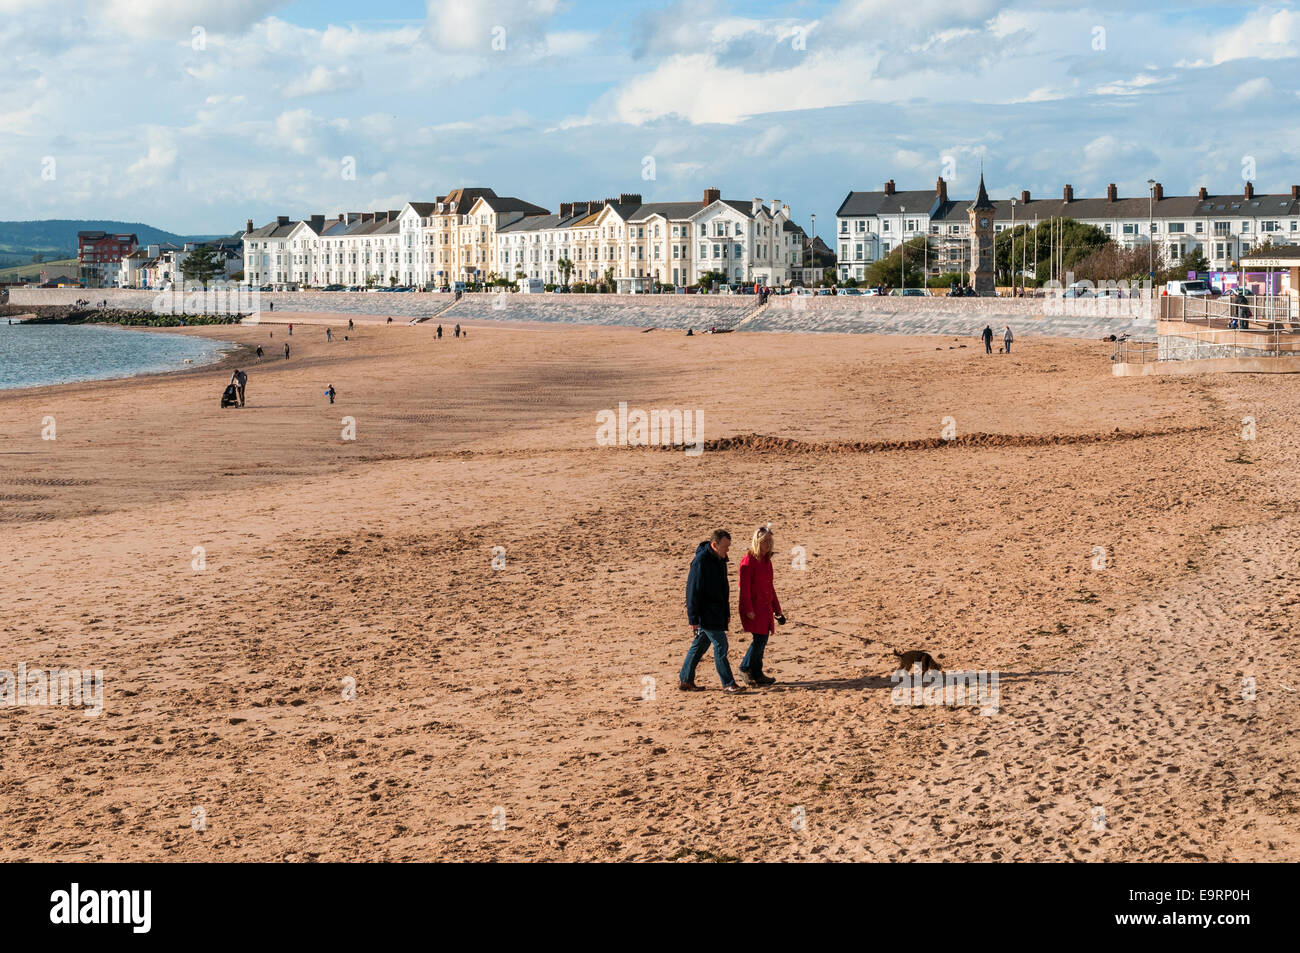 Exmouth sea front and beach with people out walking their dogs. - Stock Image